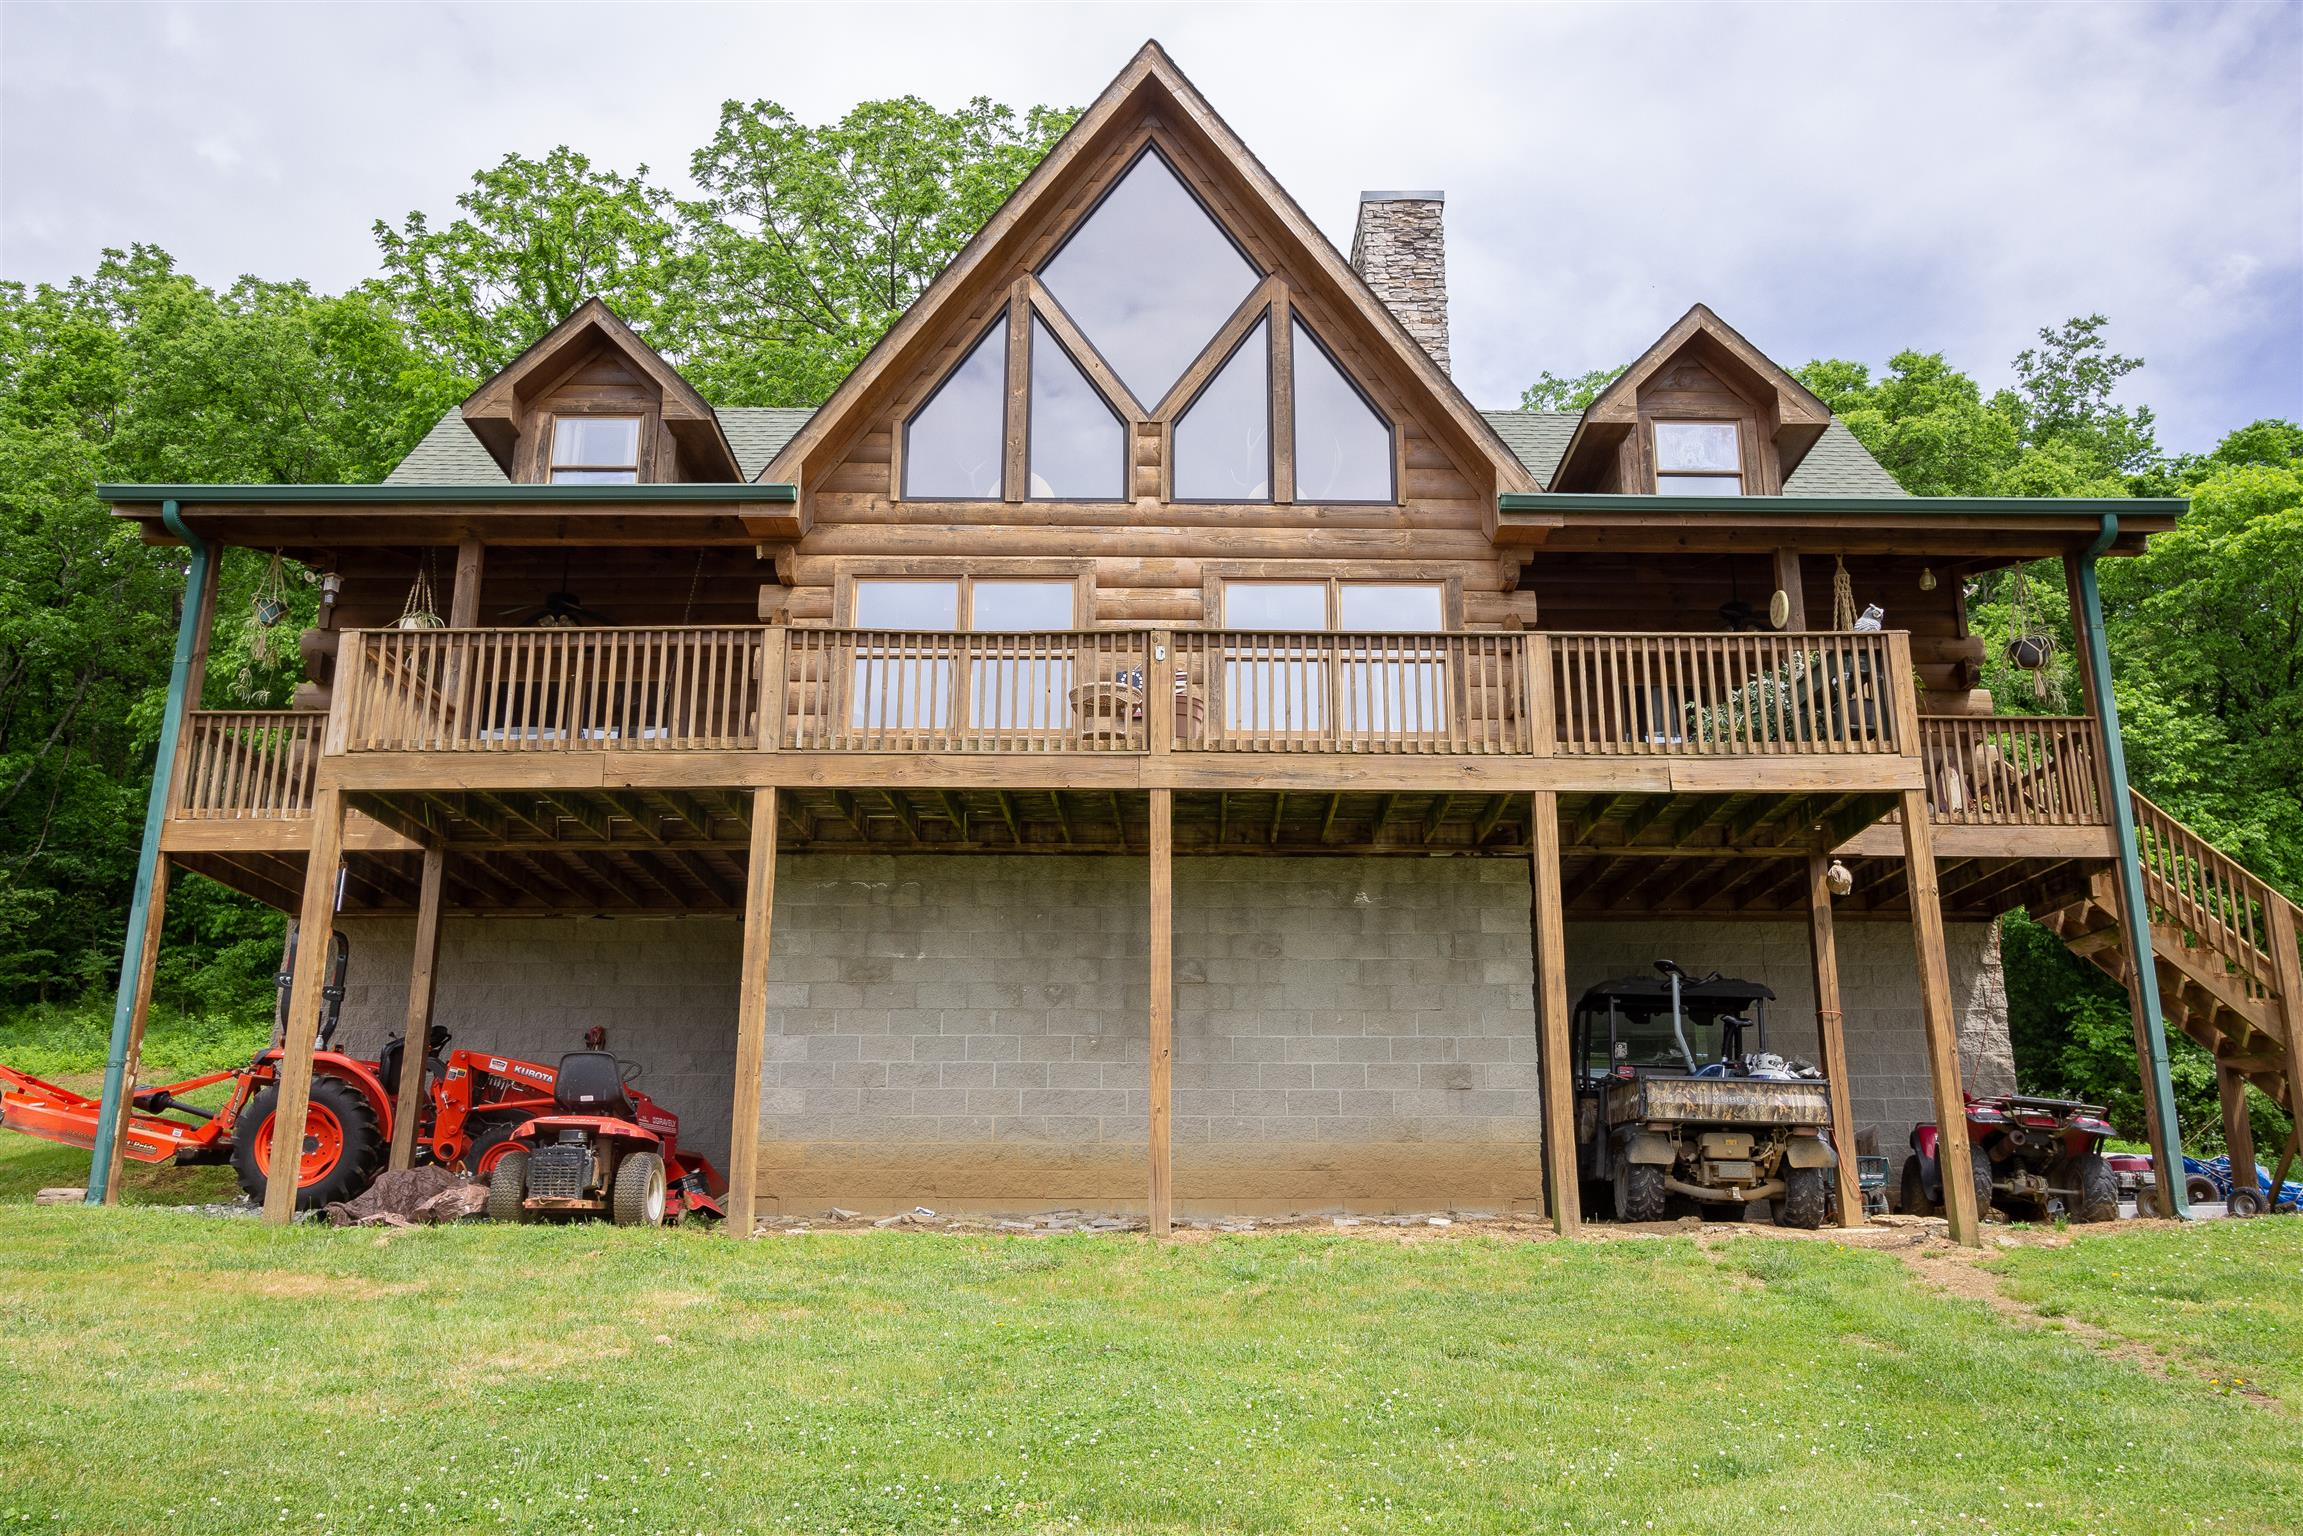 2223 Simmons Ridge Rd, Cornersville, TN 37047 - Cornersville, TN real estate listing